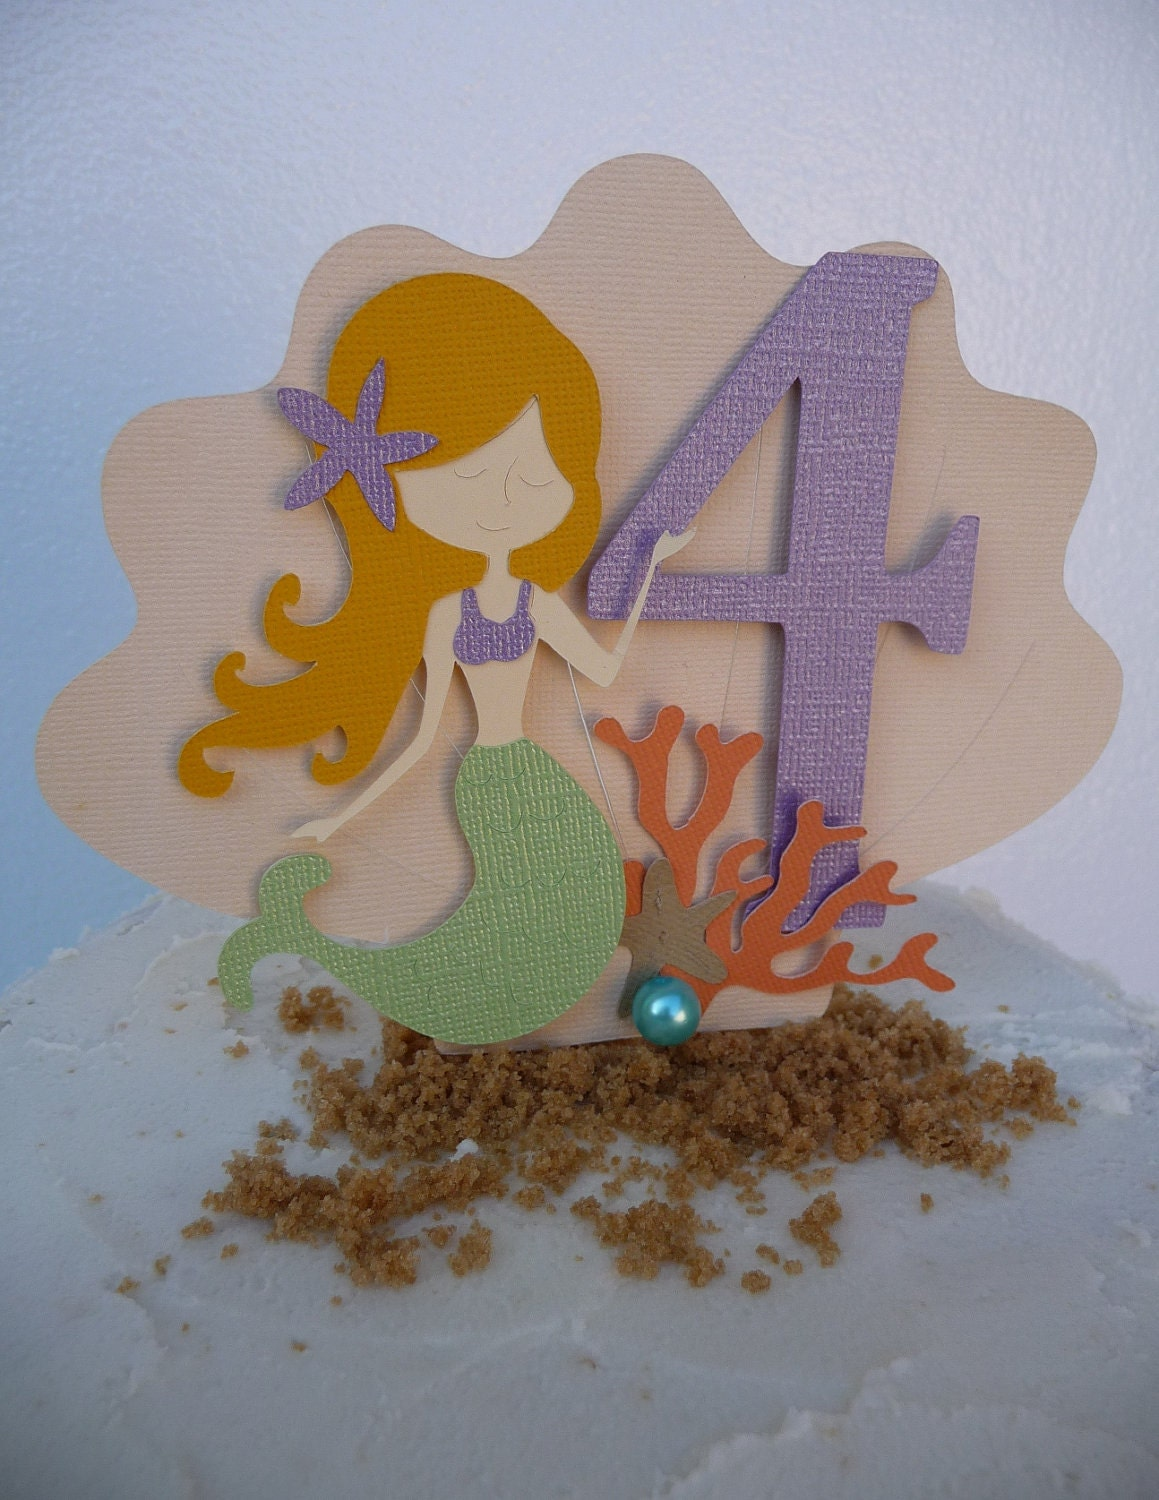 Ariel Cake Decorations Mermaid Cake Topper Under The Sea Theme Beach Pool Party